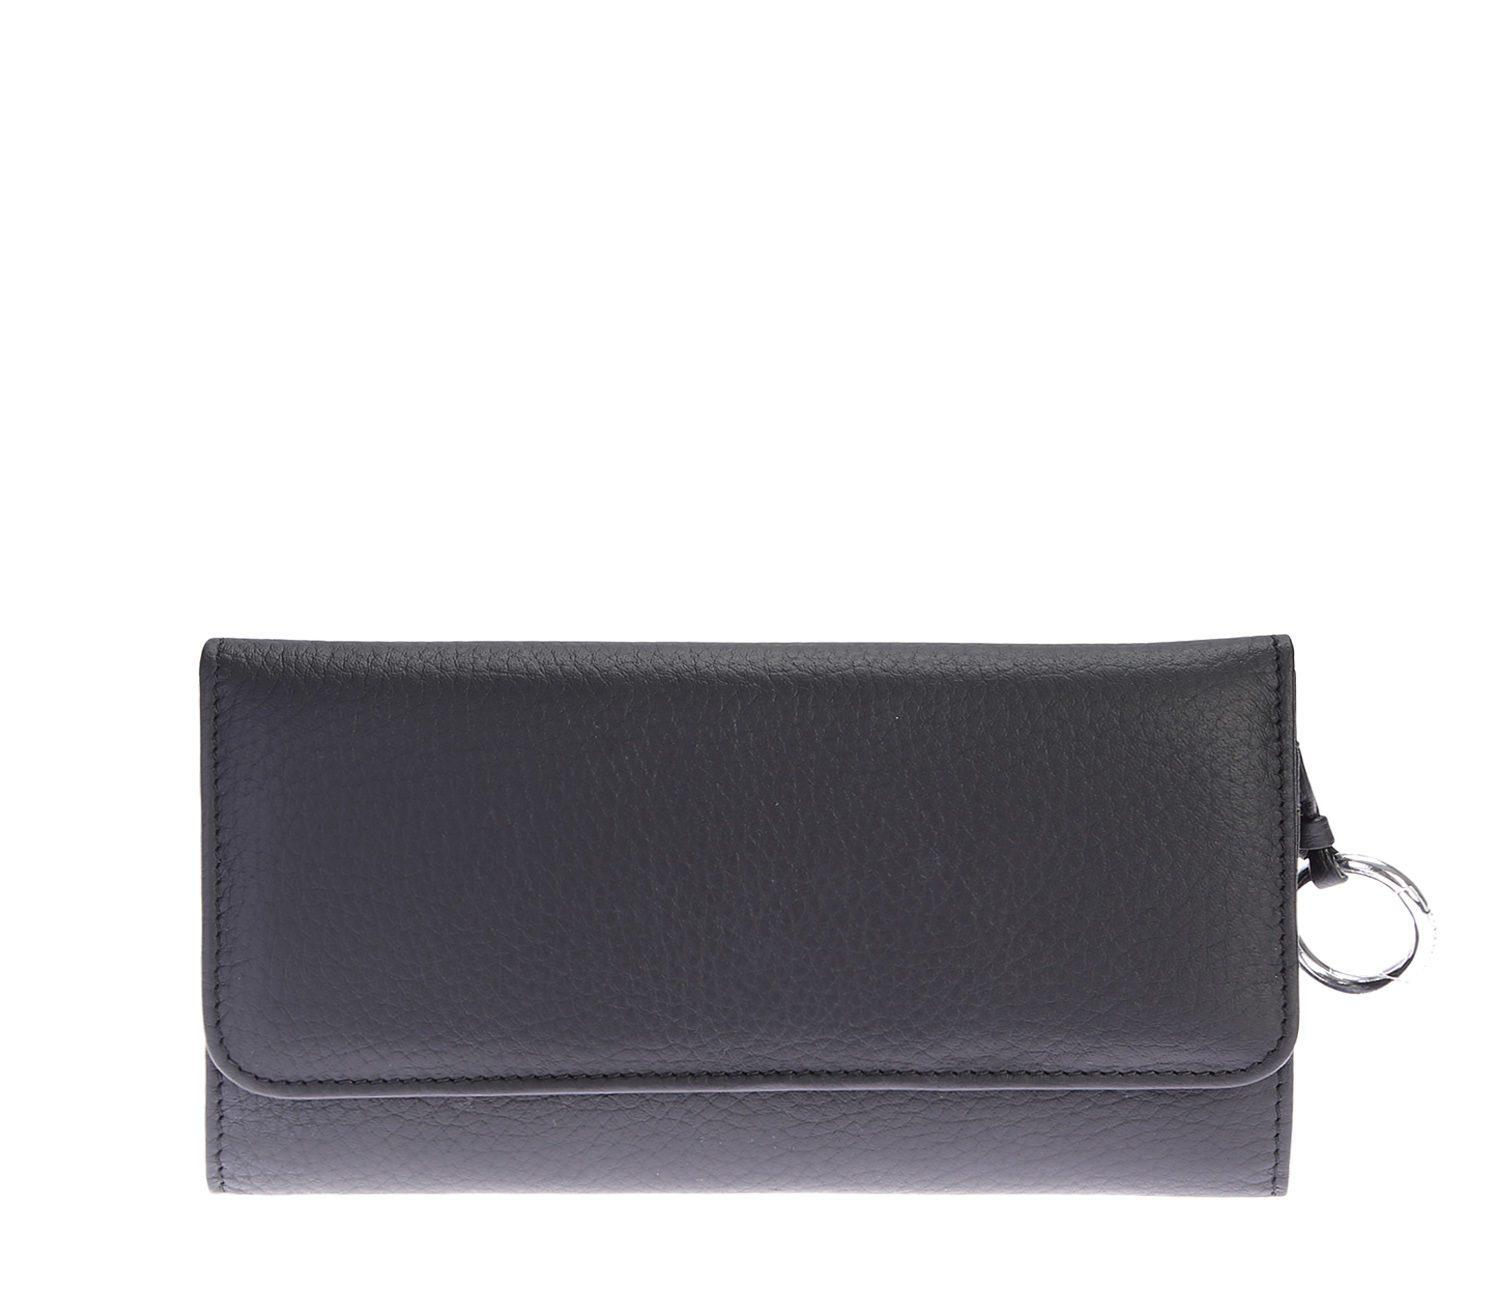 Free Shipping Best Store To Get Free Shipping Cheapest Price Cachemire Blandine wallet - Black Zanellato Outlet Really Sale Browse Buy Cheap Amazon o3Nl1bJcP